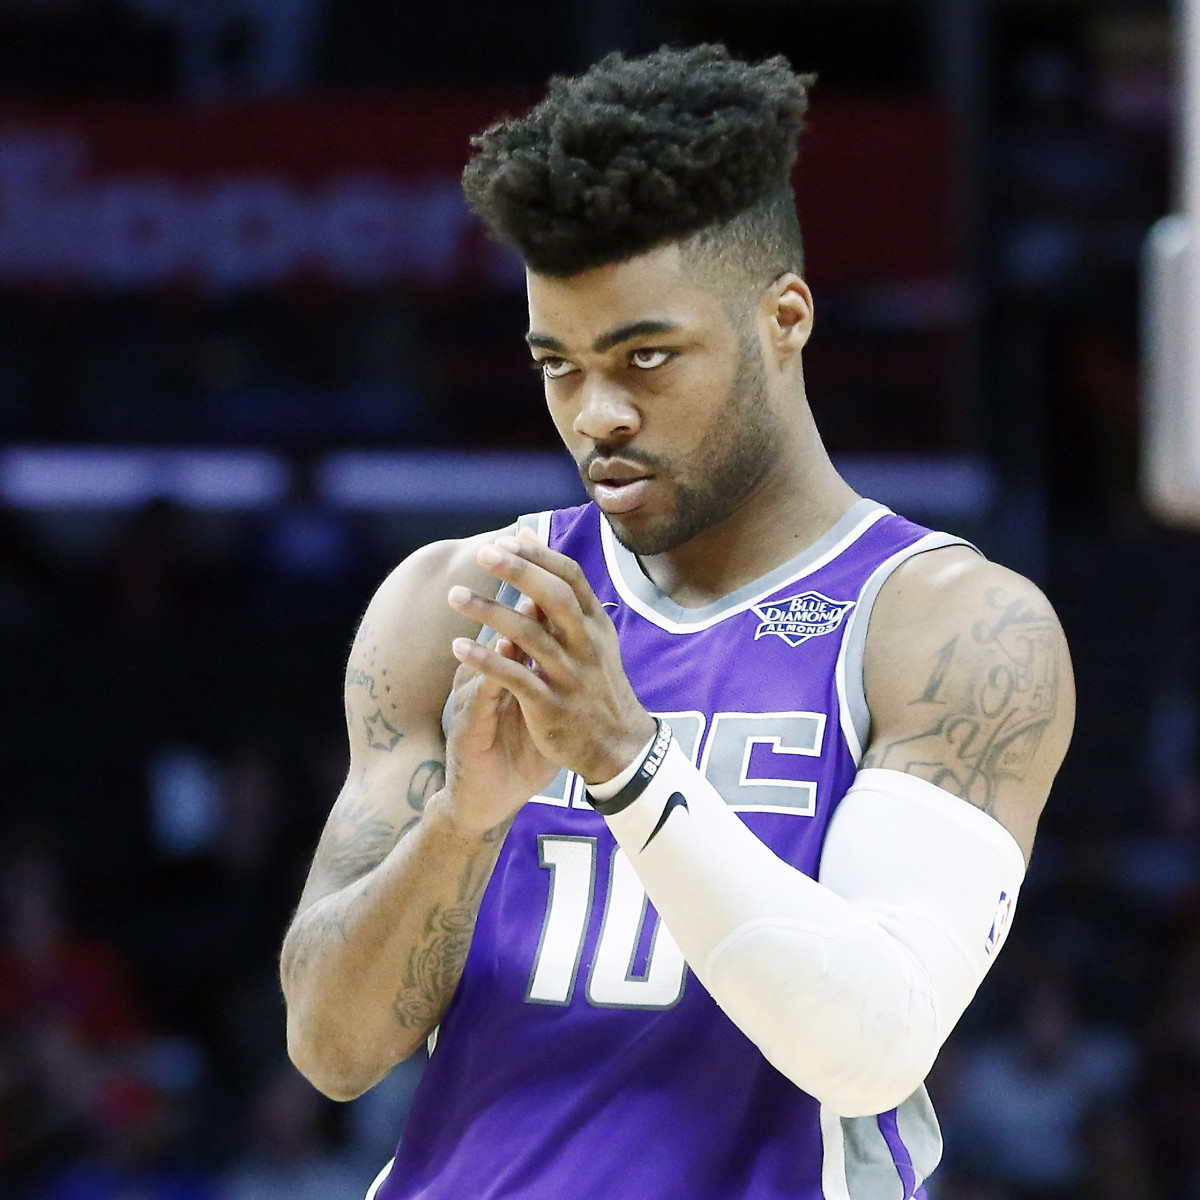 Stats: Frank Mason sets new career high against Grand Rapids